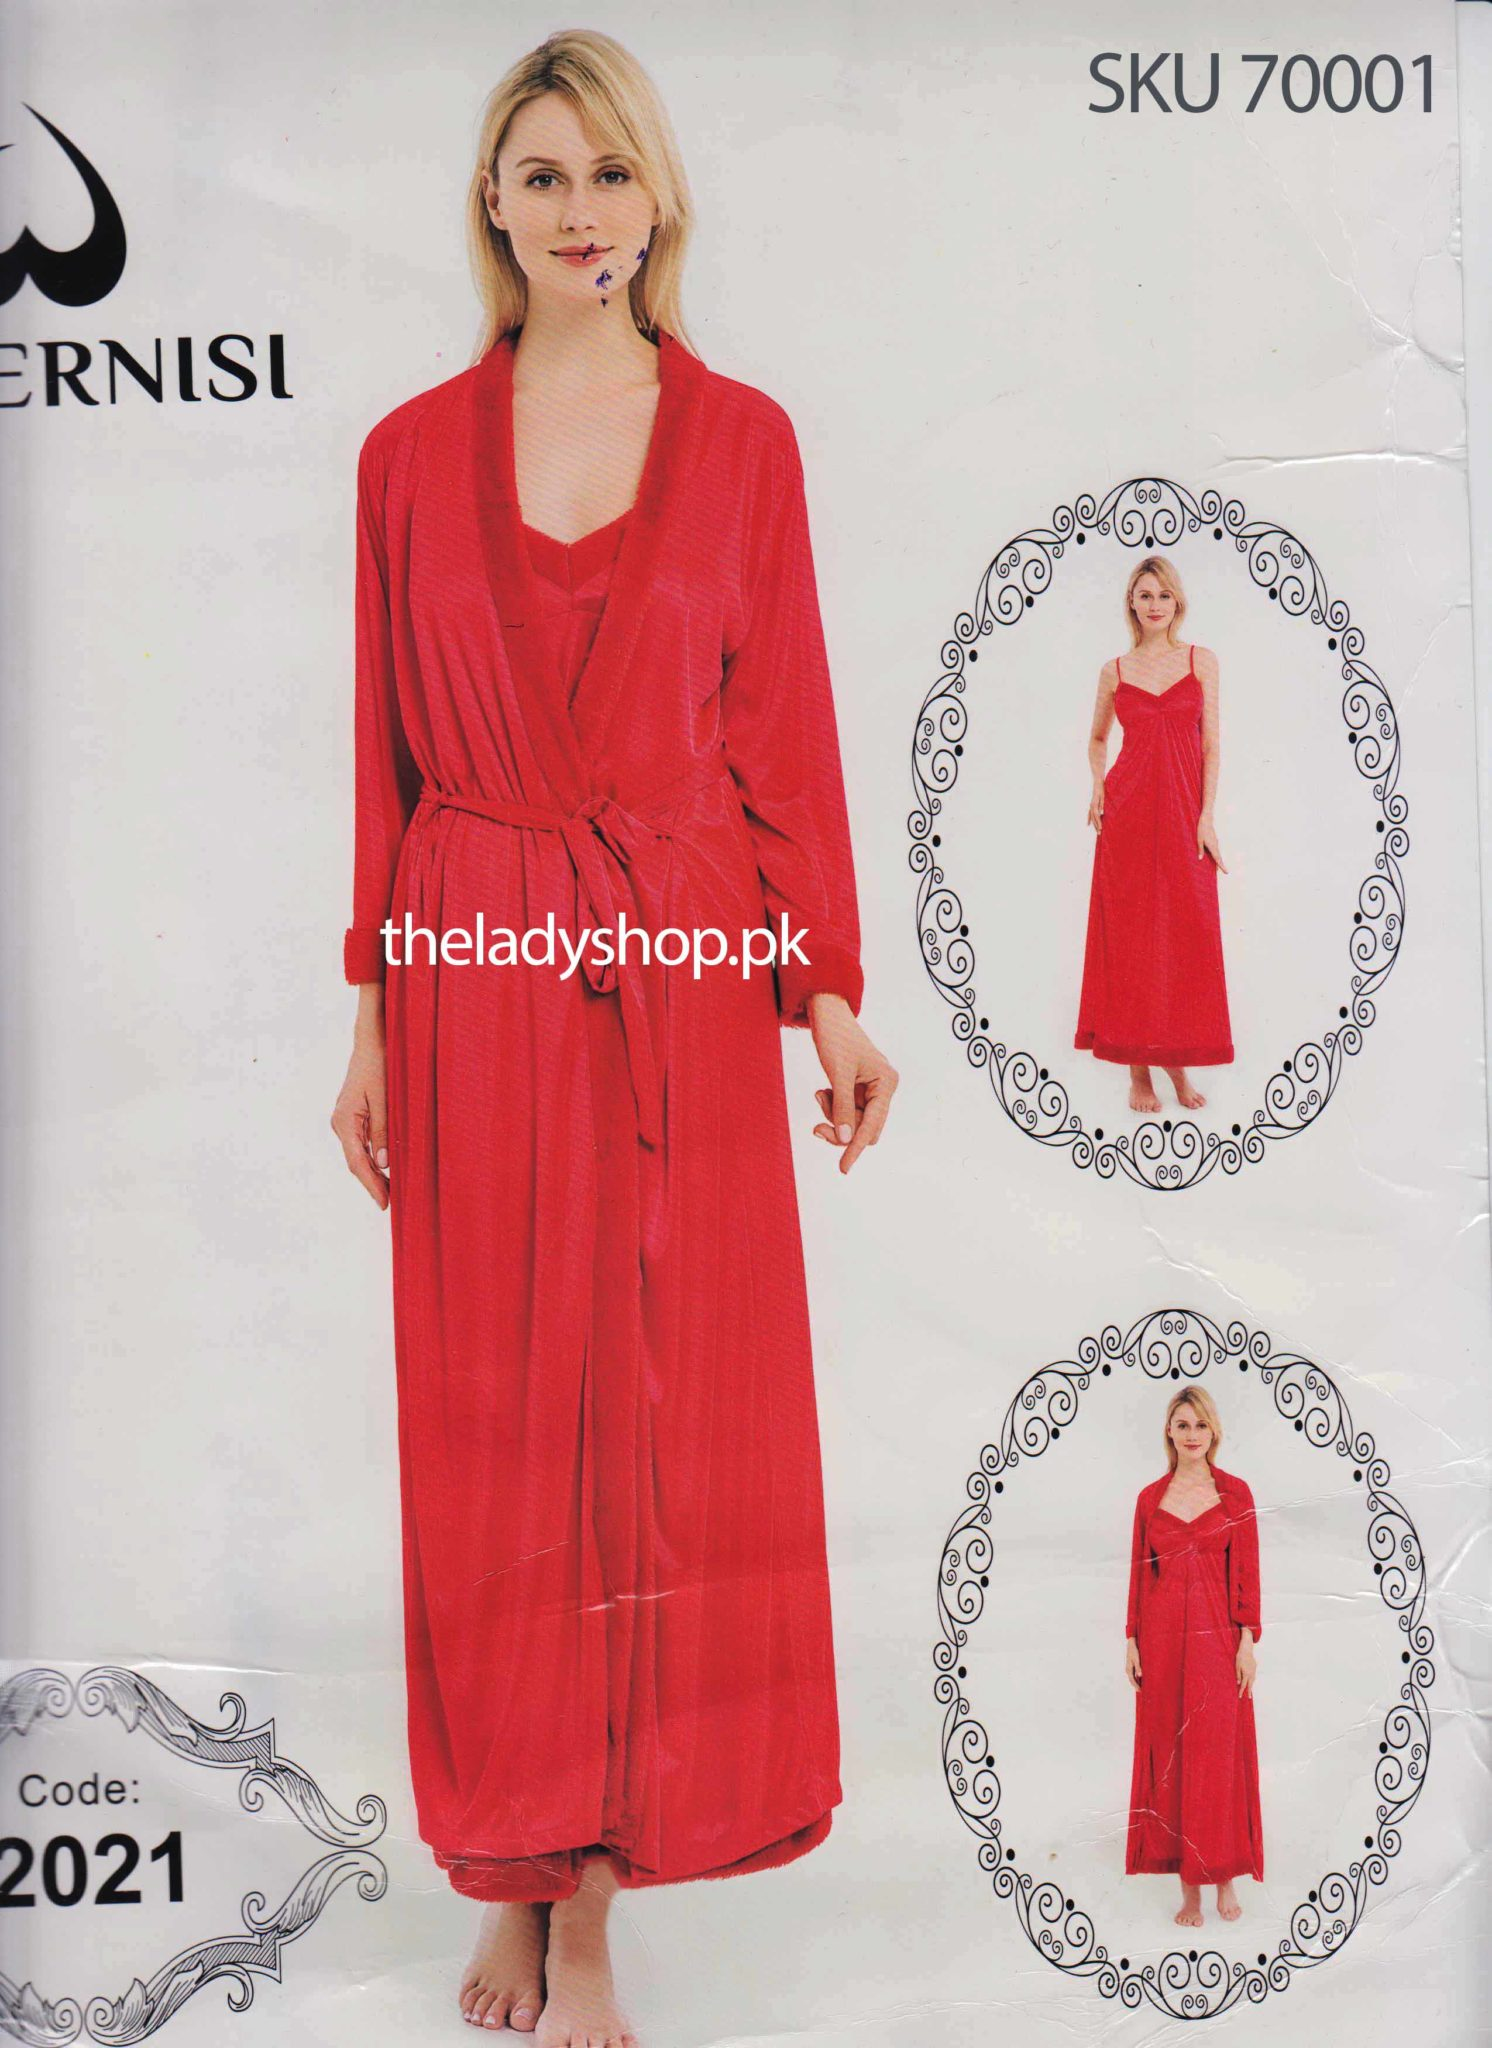 Fancy Red Robe With Long Camisole - theladyshop.pk